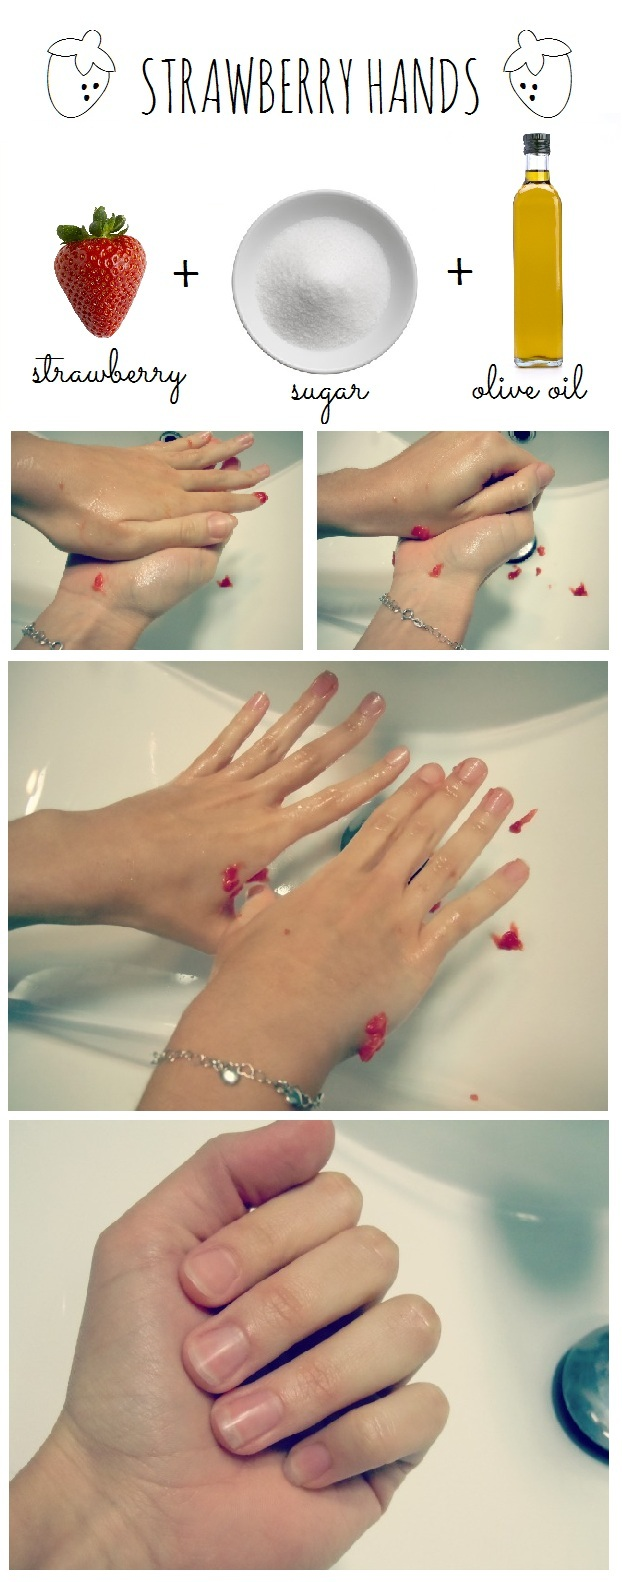 beauty-hands-strawberry-nails-belleza-mascarilla-exfoliante-casera-homemade-diy-diyearte-fresas-aceite-azucar